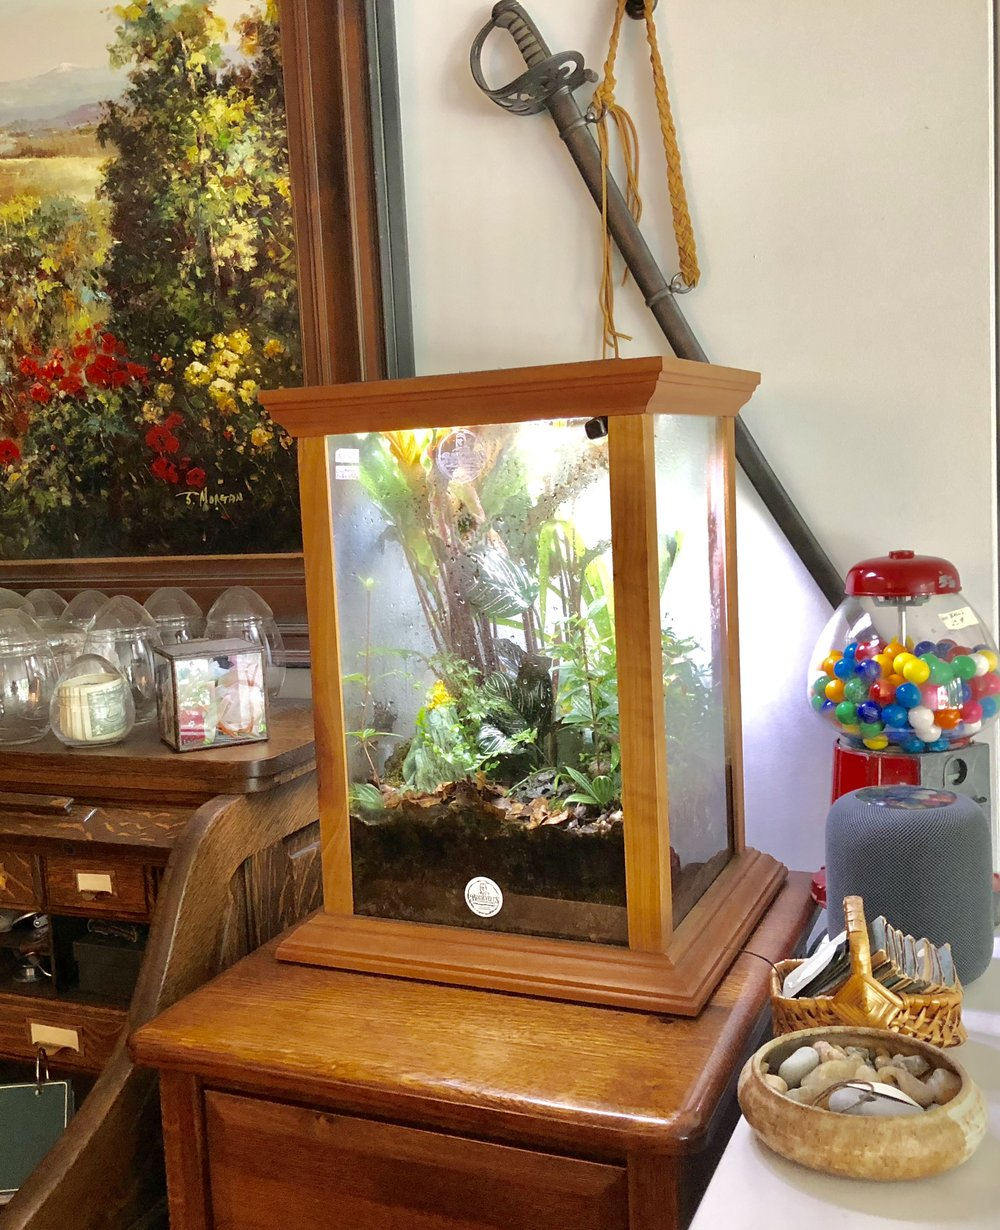 This is my own personal terrarium here in my Quarters, upstairs from the shop. I made it myself out of solid cherry. It has had one poison dart frog living happily inside for the last 14 years!